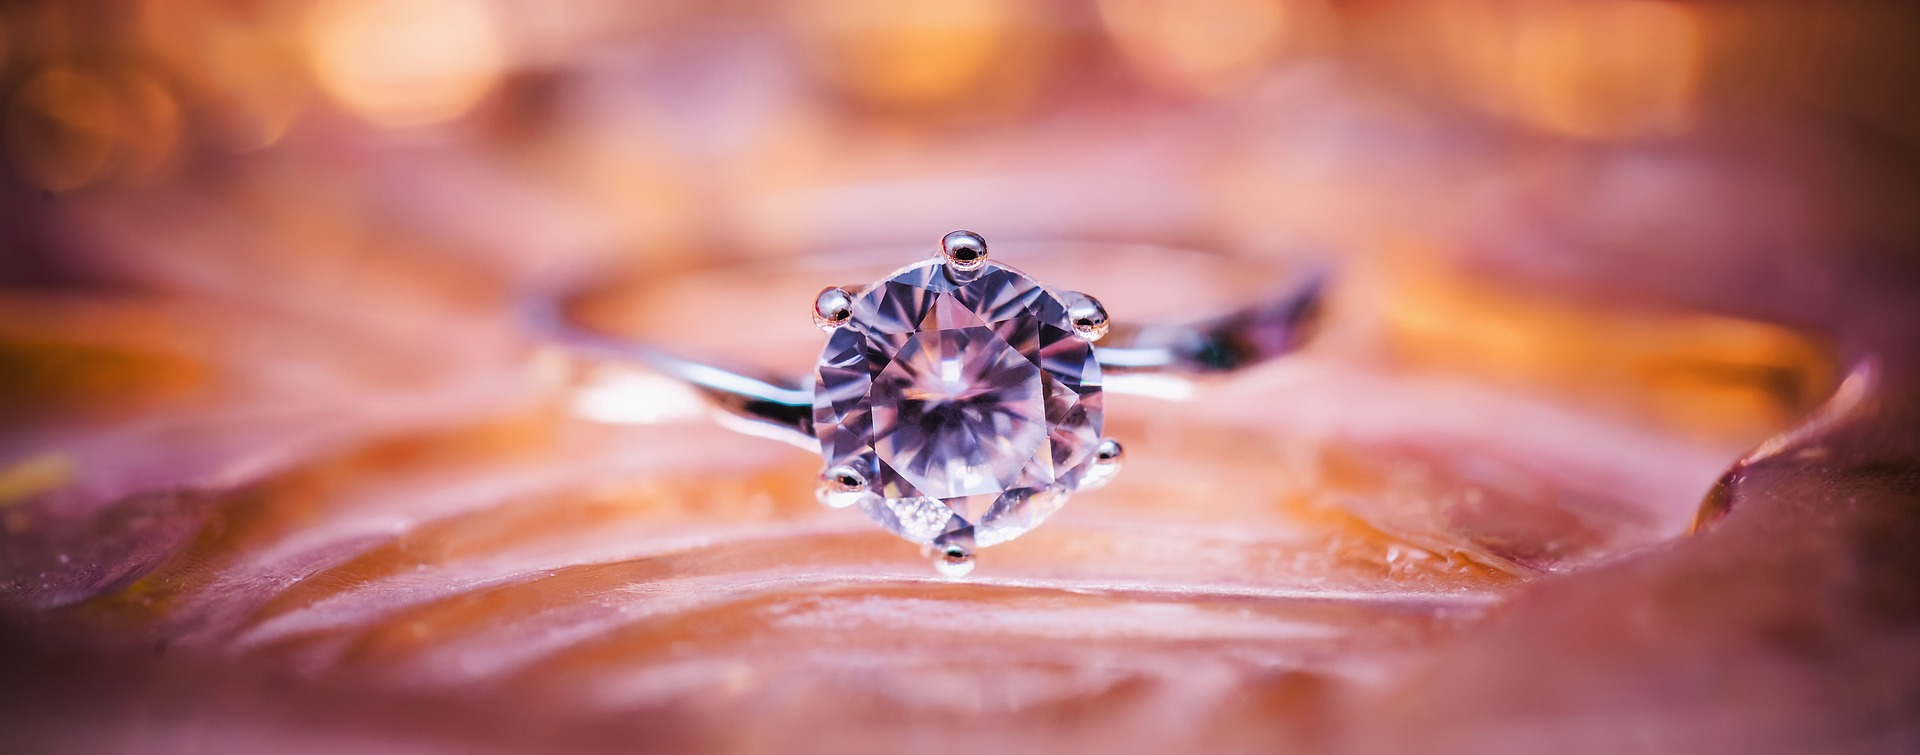 OK, so now you know a bit of background, there are some reasons a diamond may still be a girl's best friend. They're associated with love and wealth - they have been for years, so this is not going to change any time soon. It's how we've been conditioned to look at them!